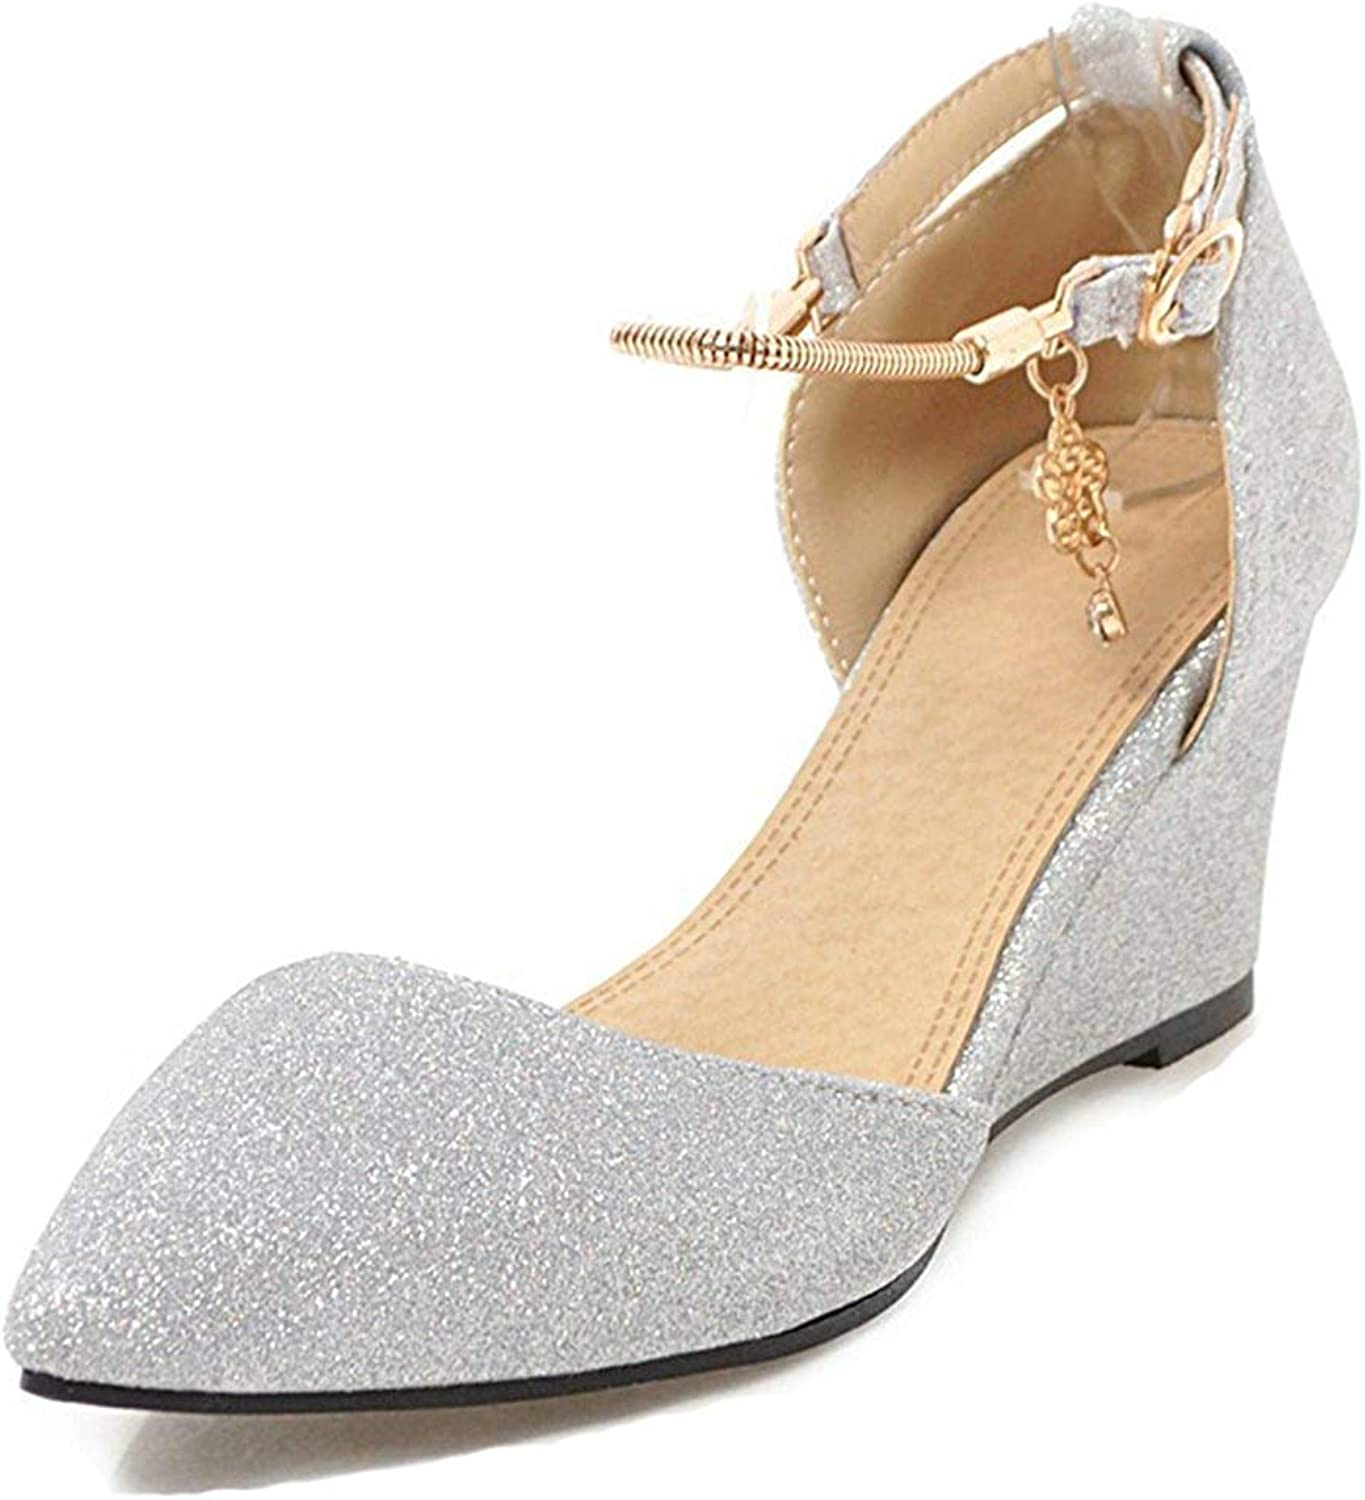 Unm Women's Glitter Sequins Buckled Medium Heel Dressy Closed Toe Wedge Sandals with Ankle Strap